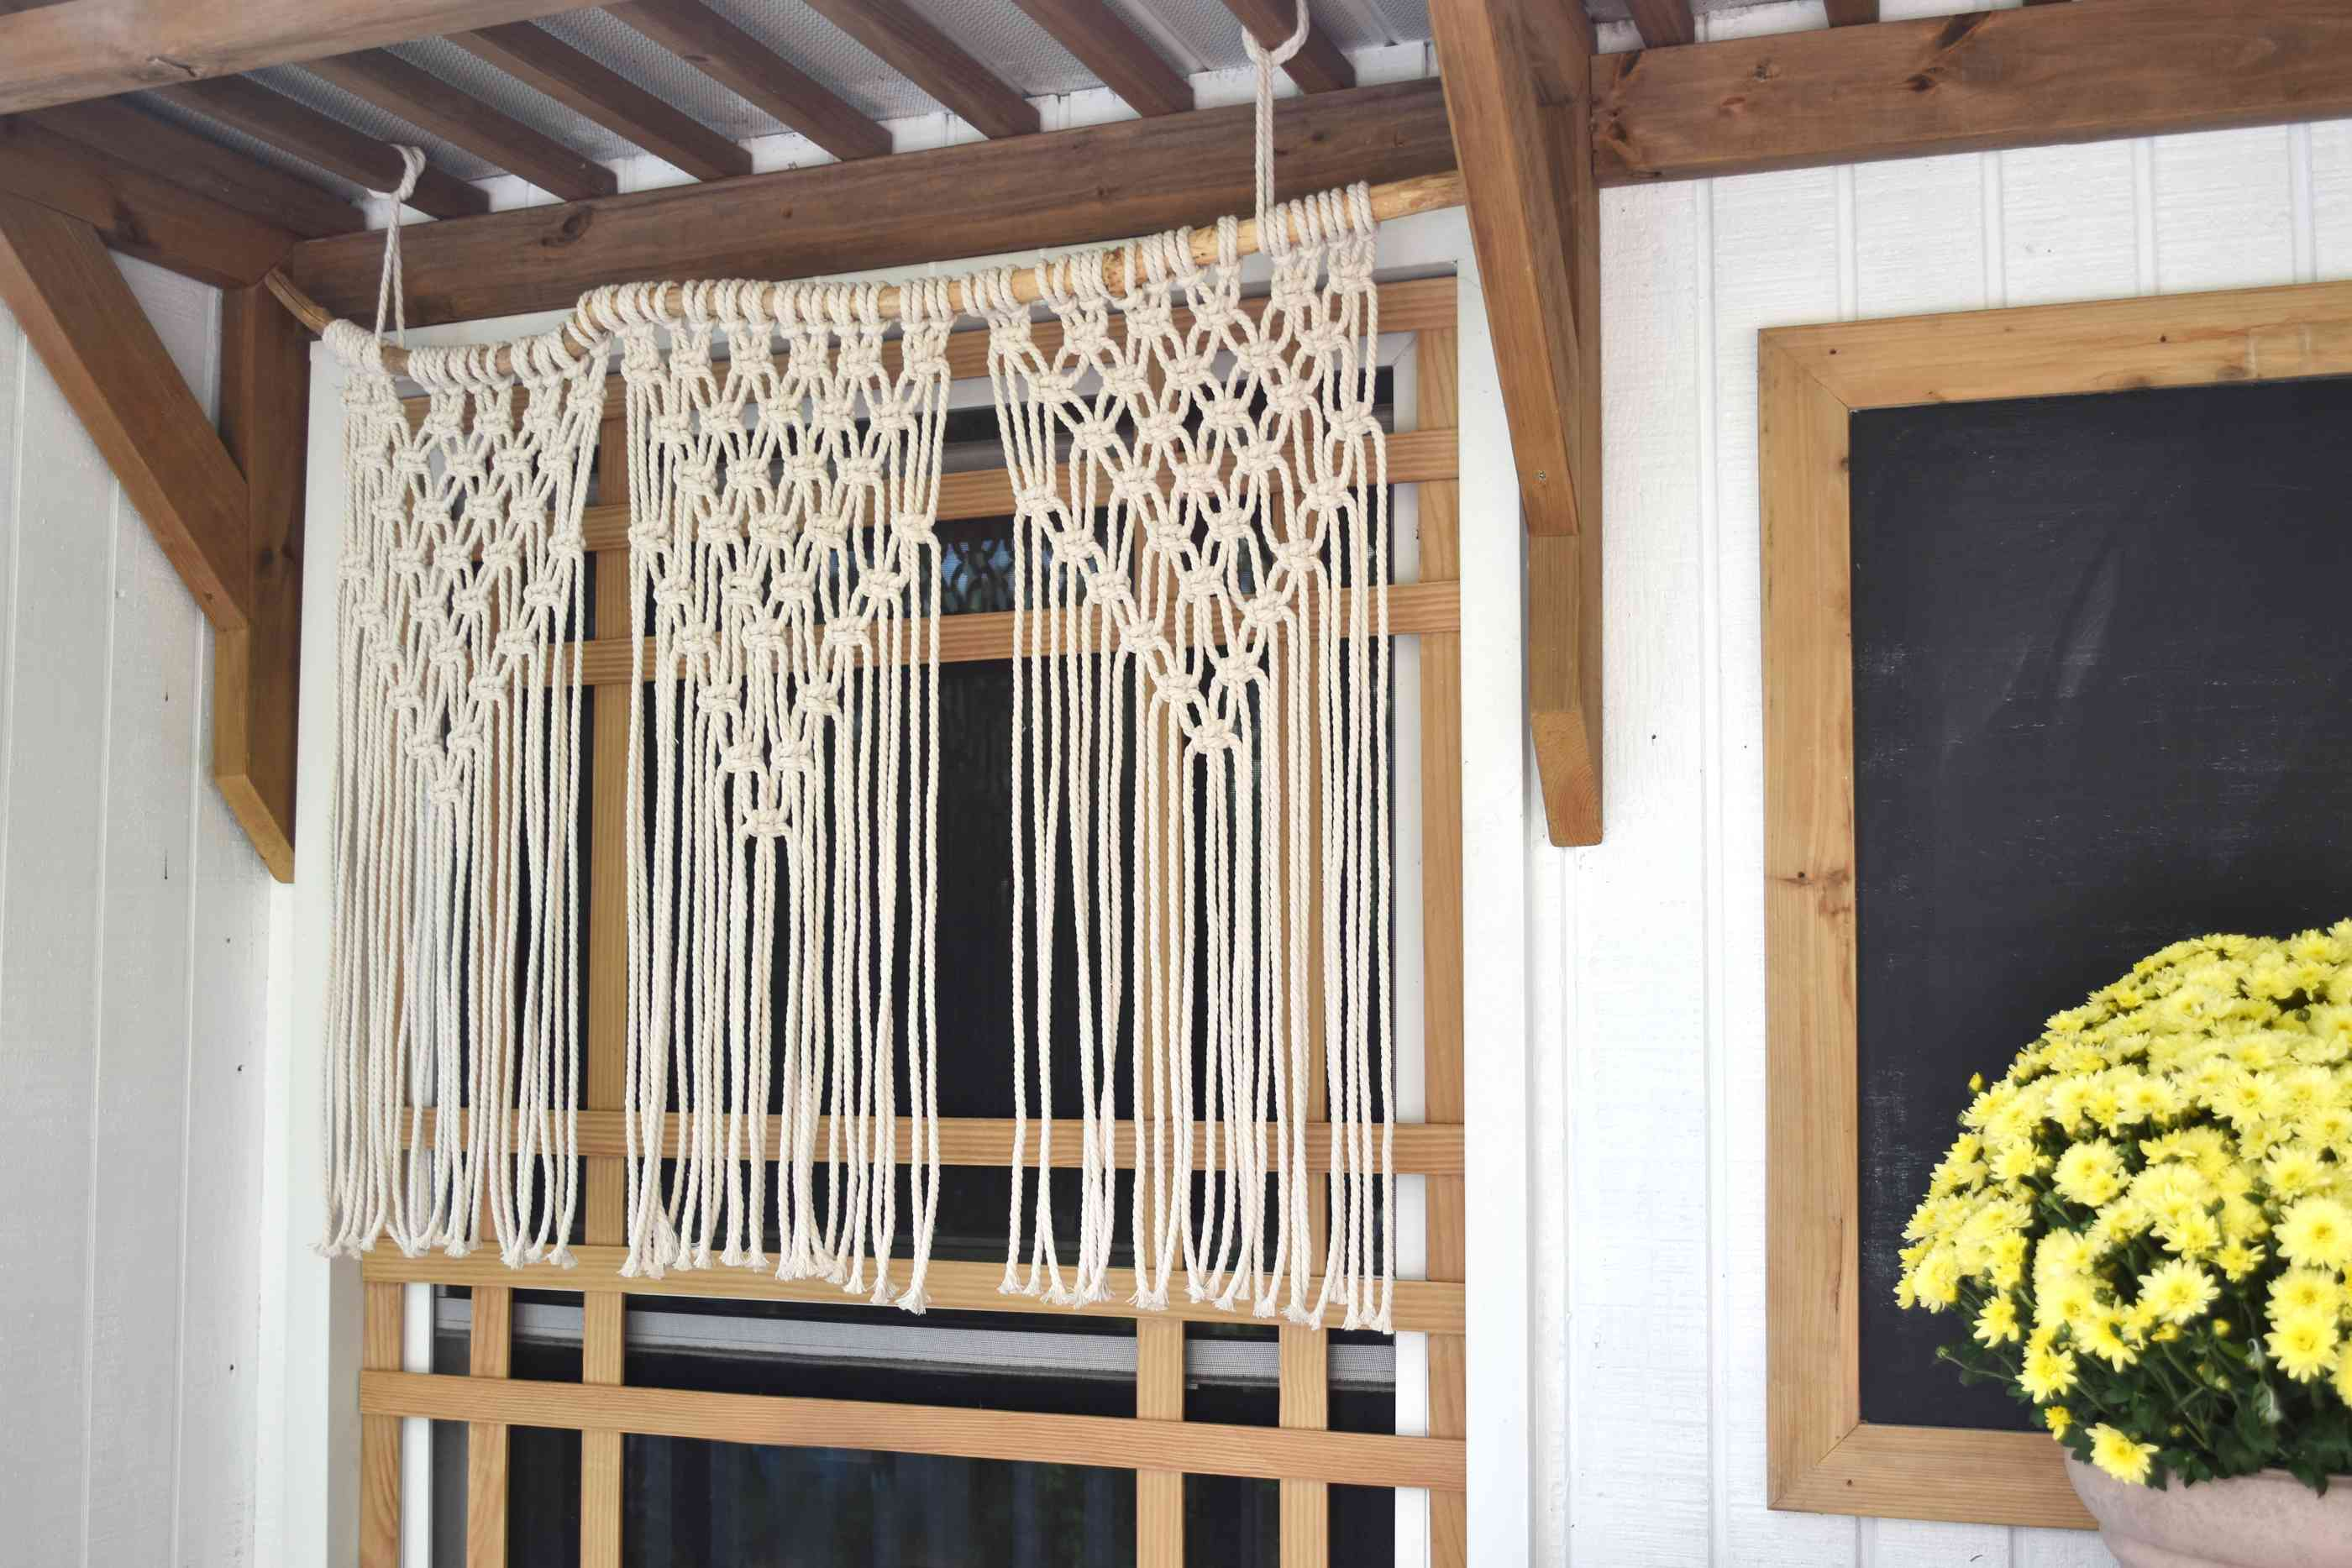 Hang the macrame curtain over a window